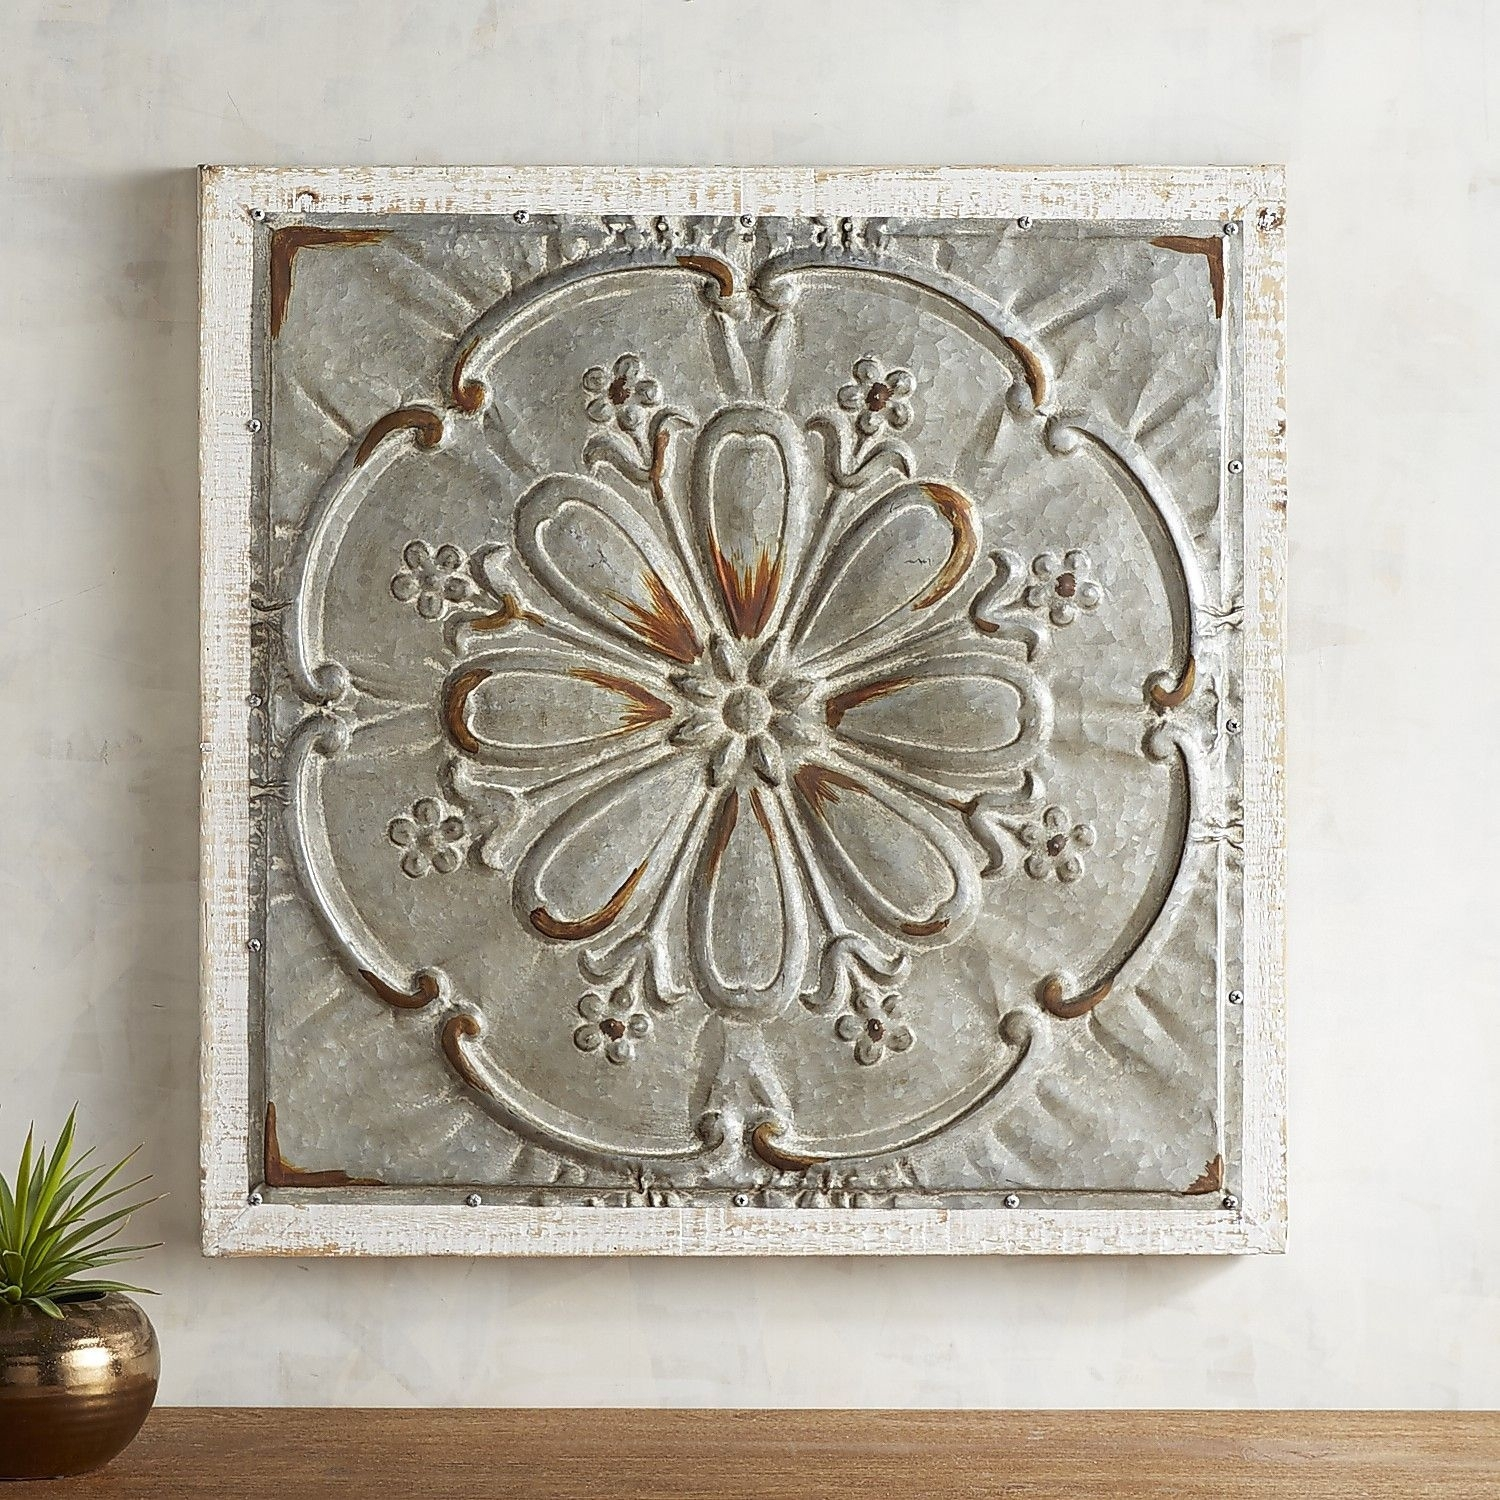 Whitewashed Medallion Wall Decor | Pinterest | Wall Decor, Walls And Inside Most Up To Date Medallion Wall Art (View 19 of 20)